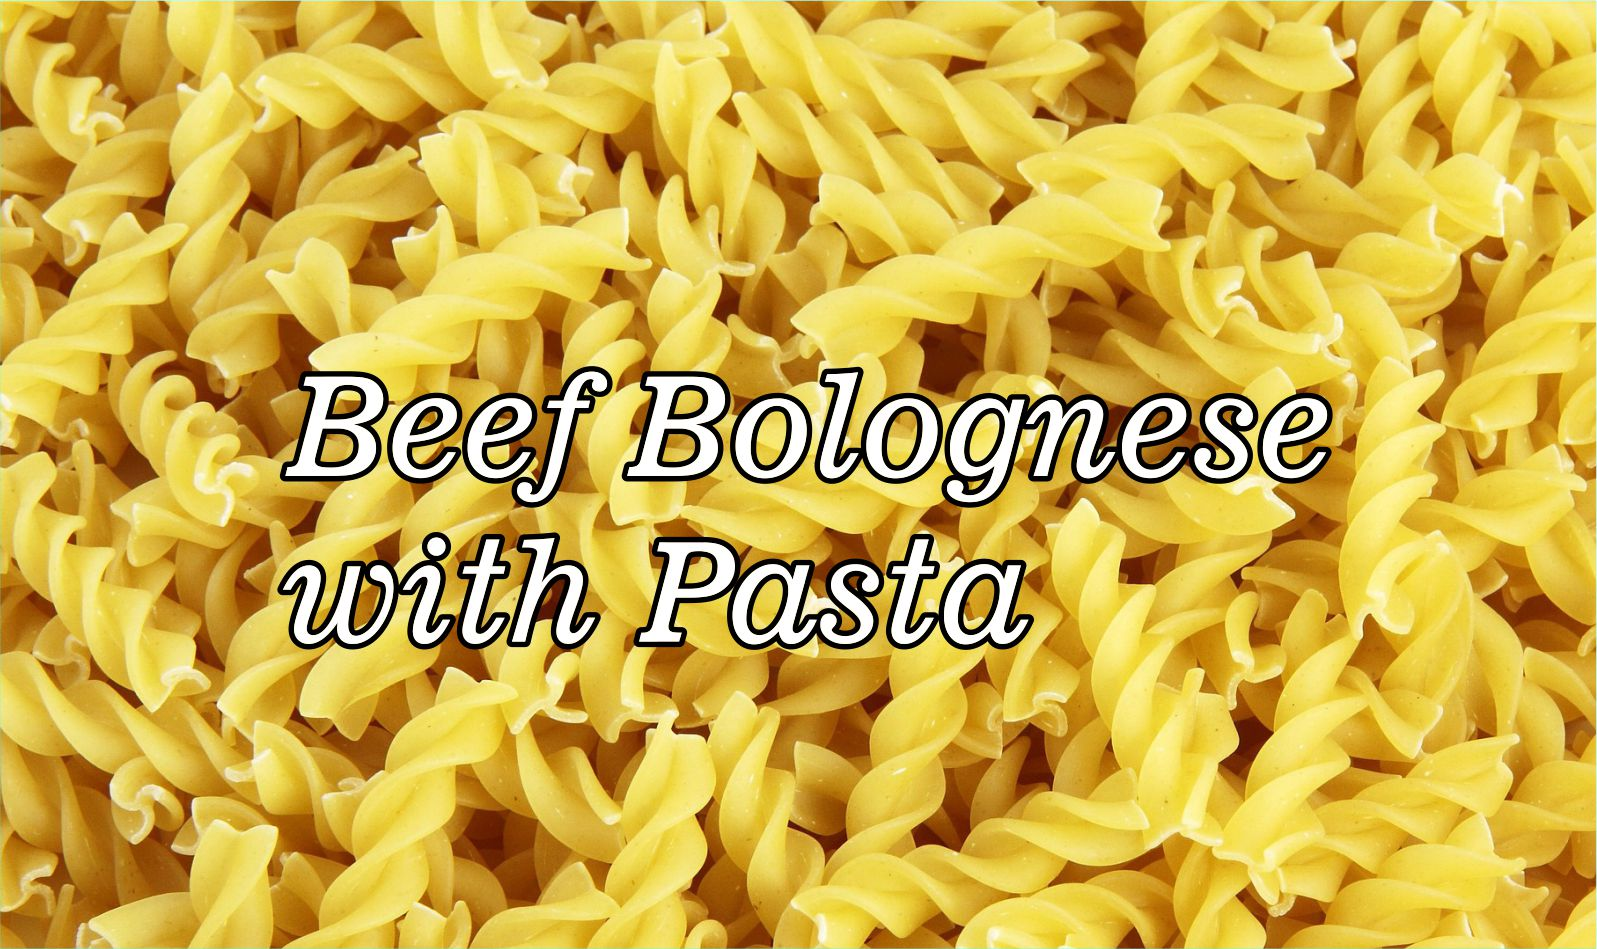 Beef Bolognese with Pasta